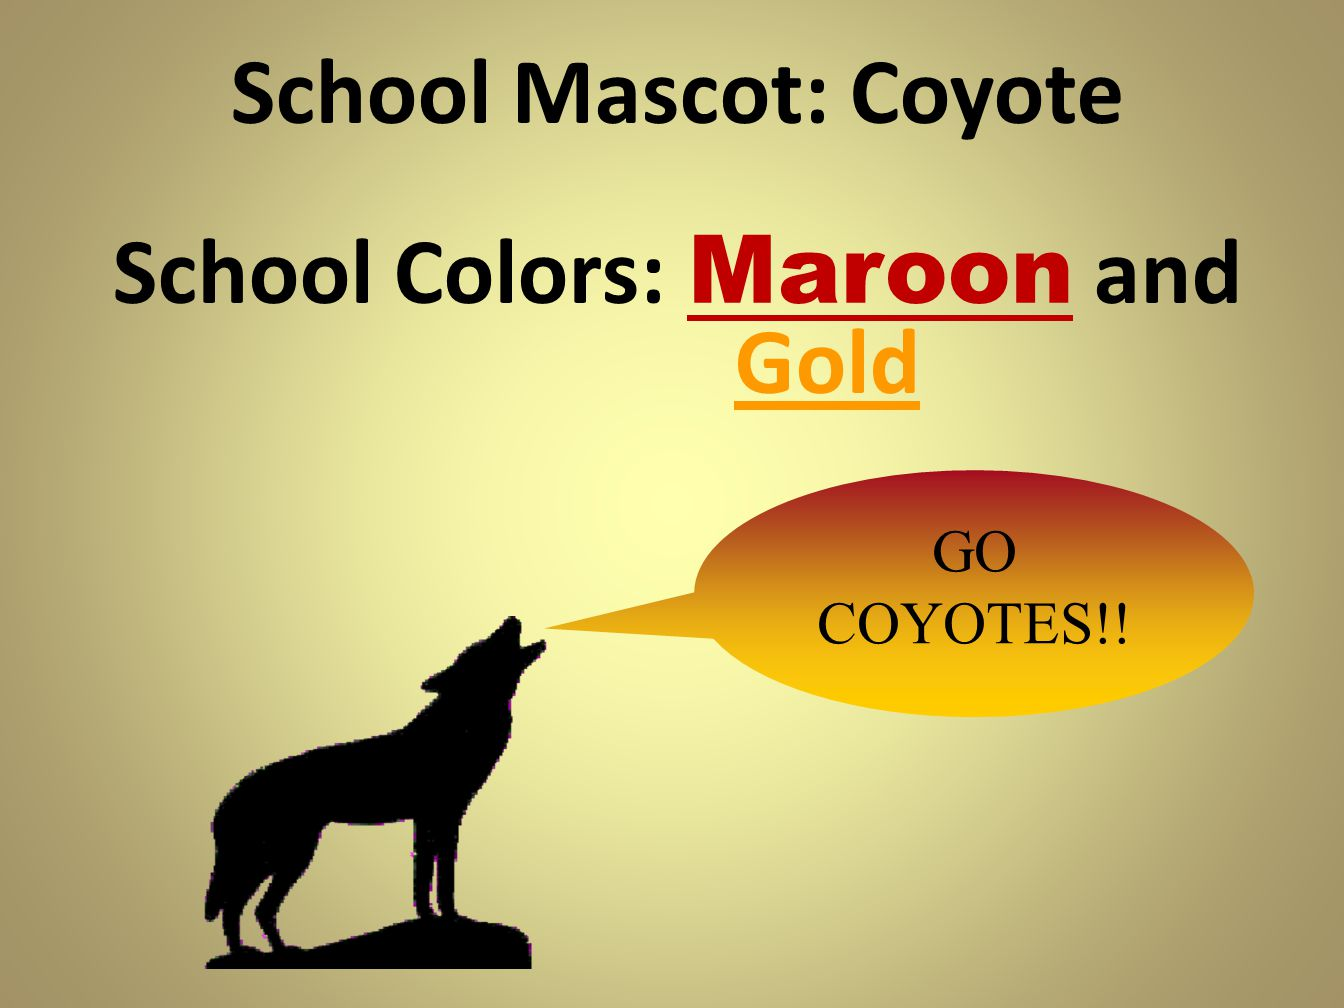 School Colors: Maroon and